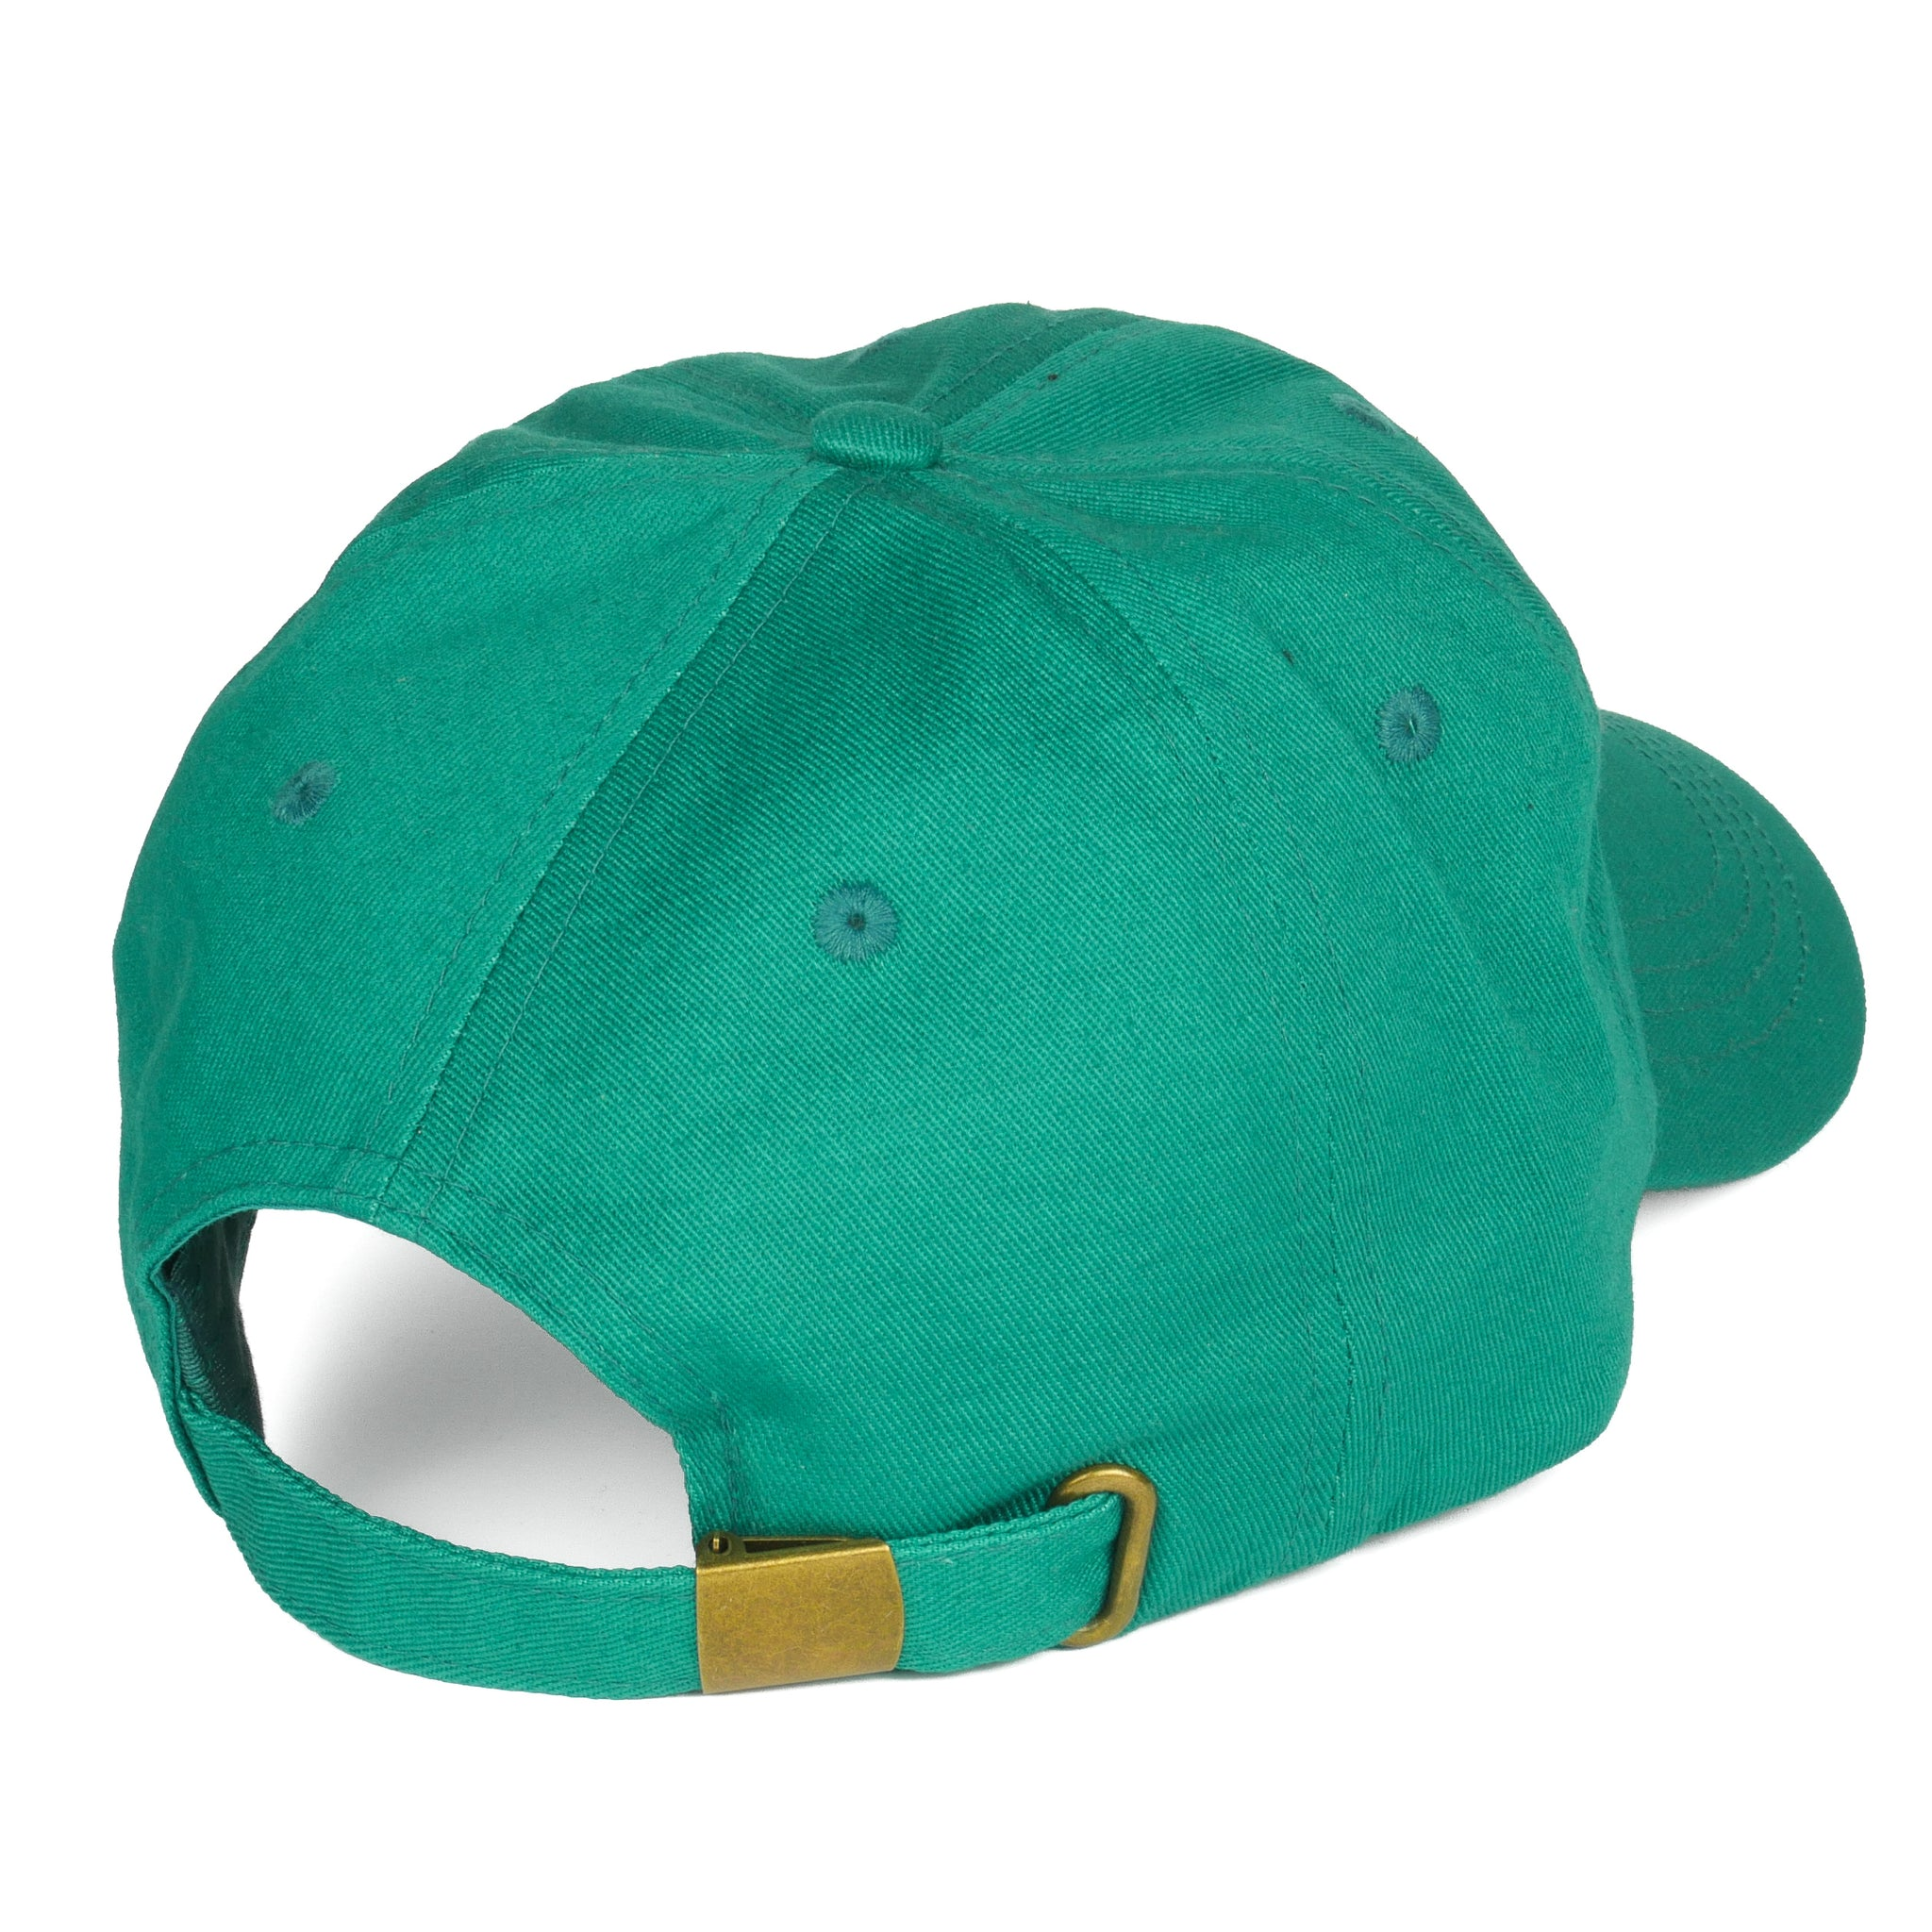 The Pops - 100% Cotton - Emerald